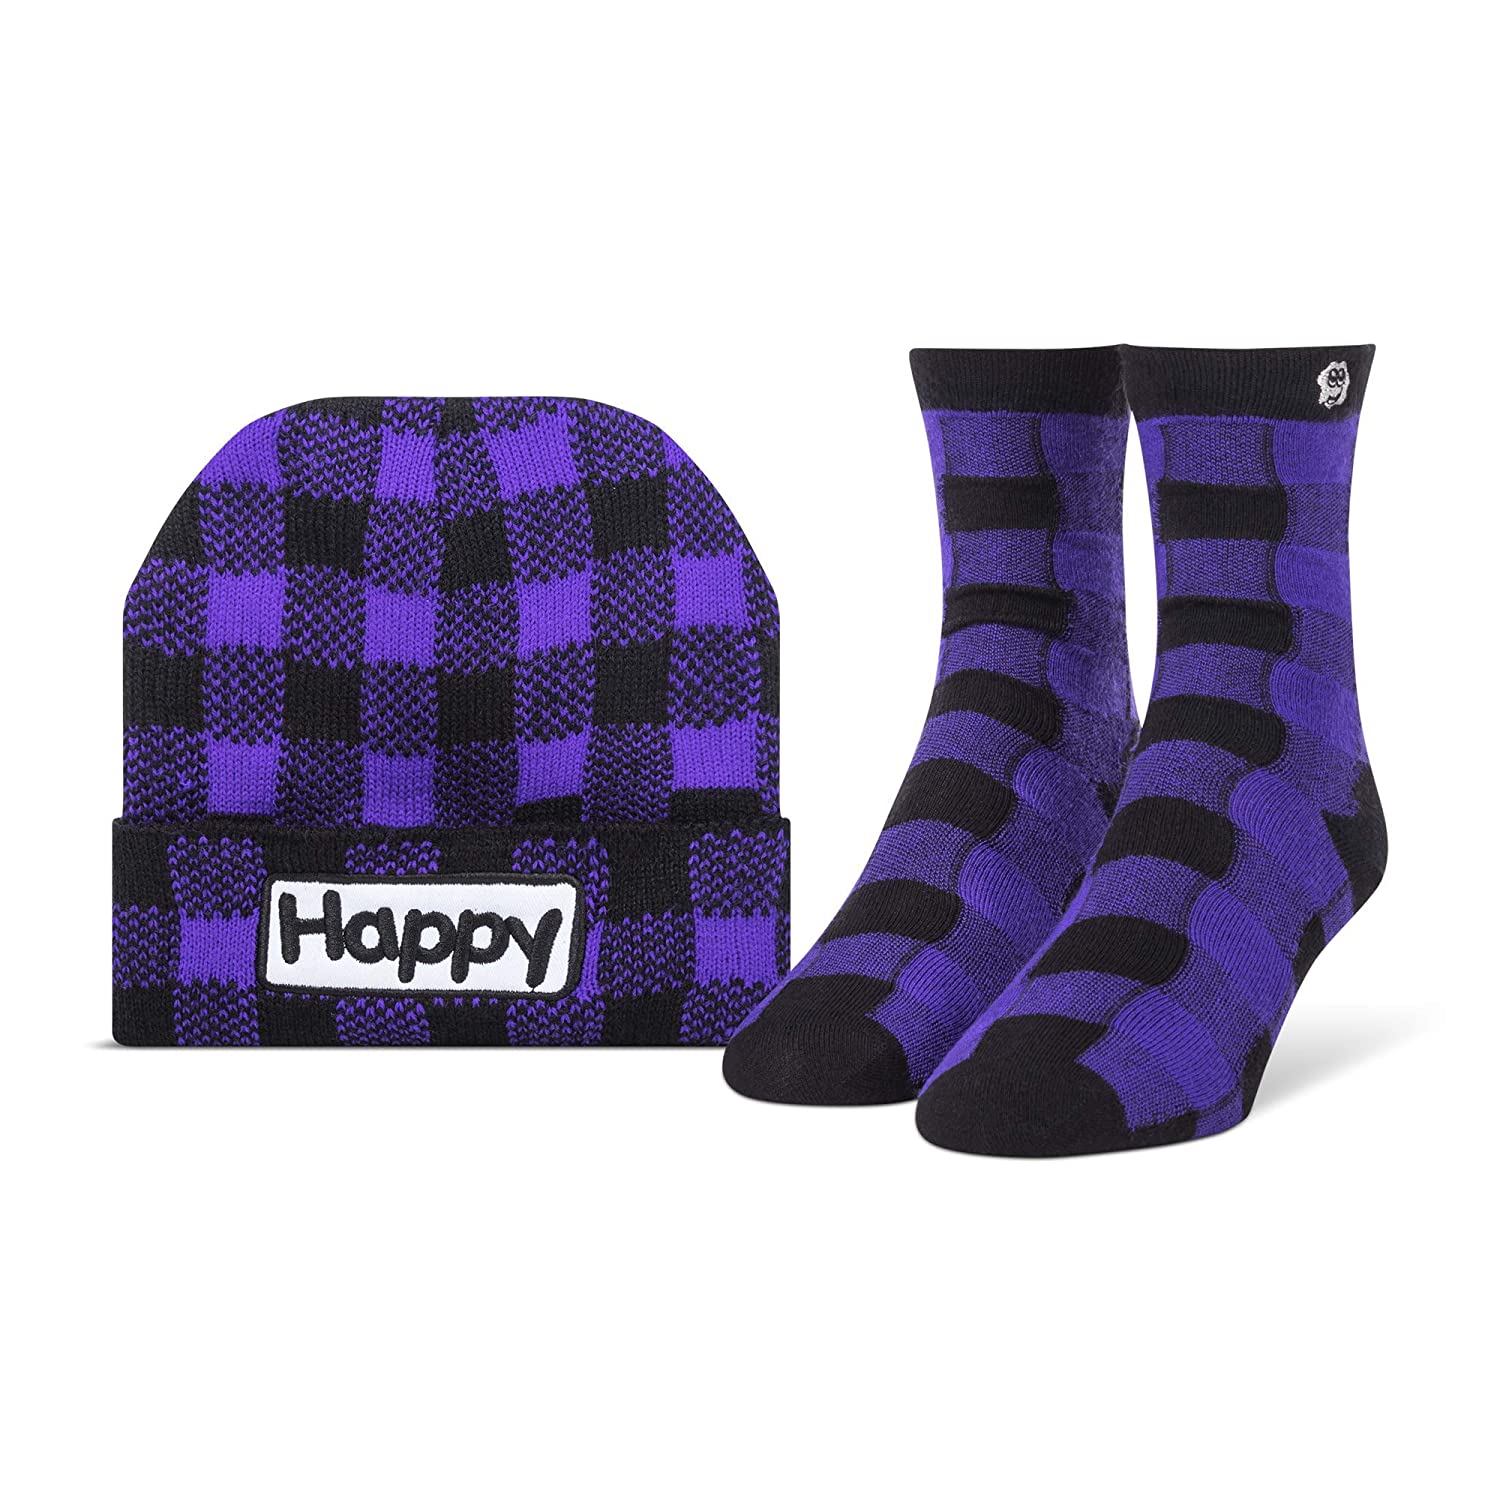 37f3c95ce06 Happy Cloud Women s Charity Bamboo Seamless Crew Sock and Beanie Bundle  (Purple Plaid) at Amazon Women s Clothing store